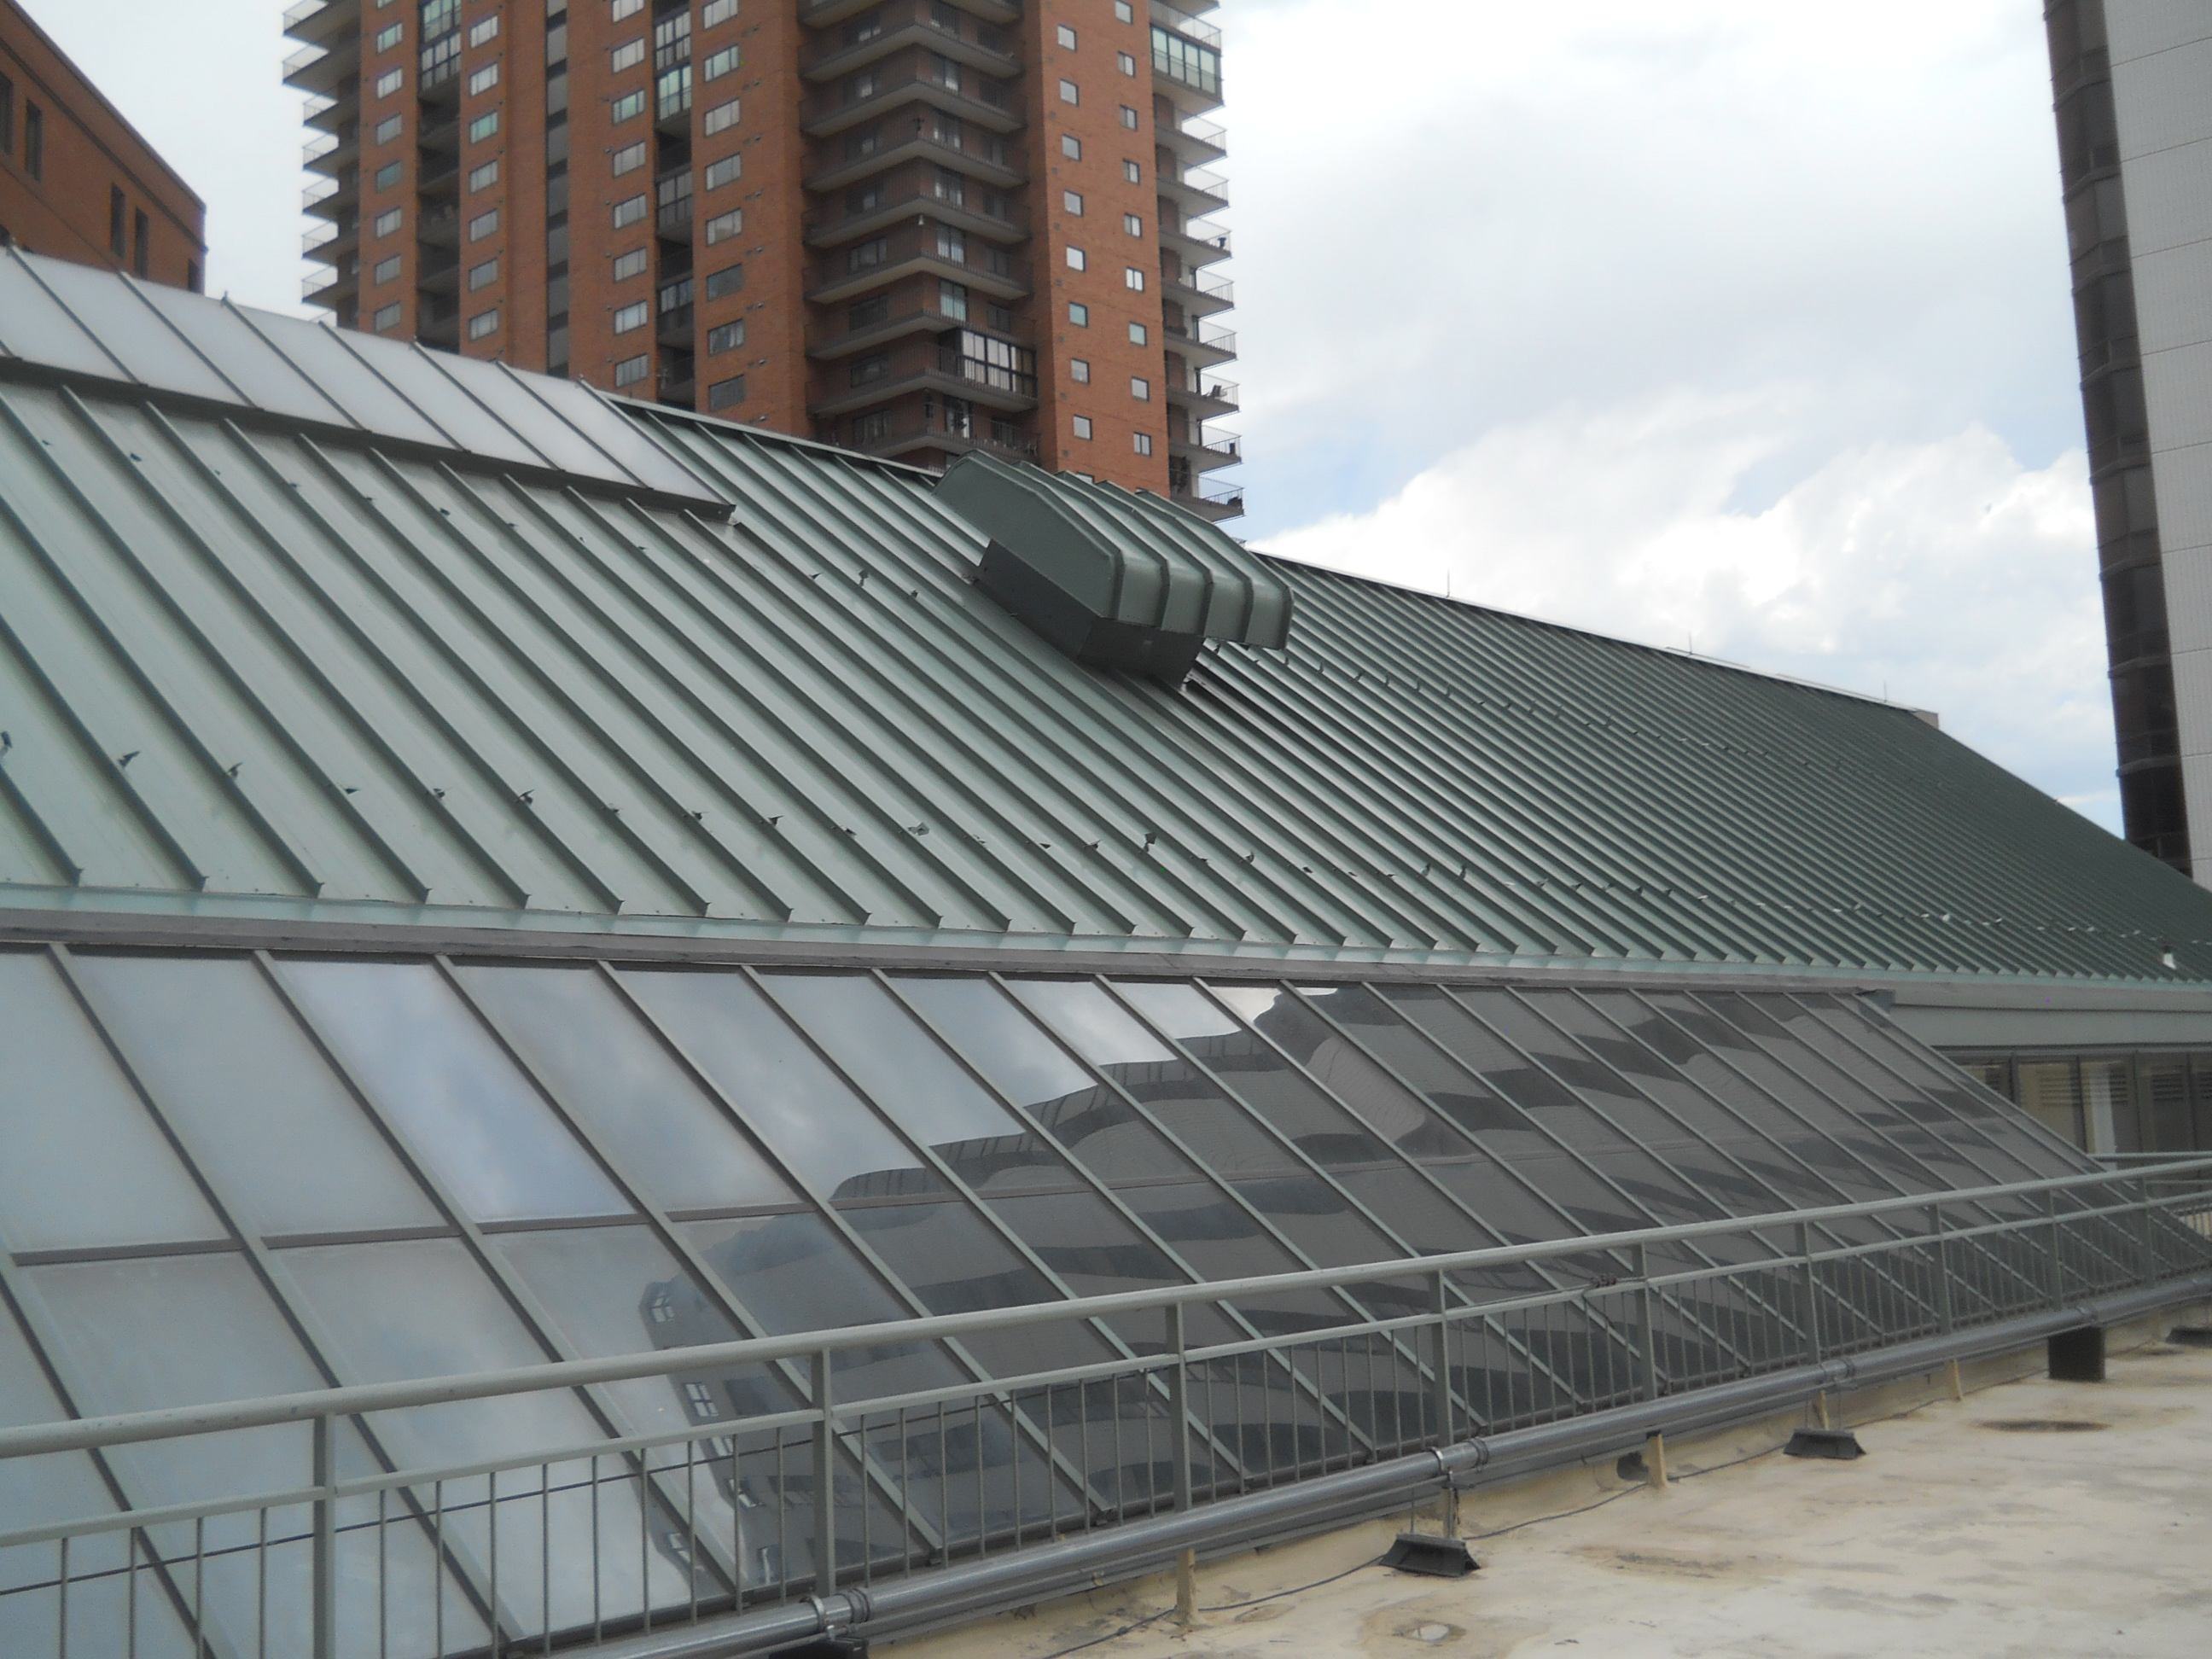 Ridge skylight and HVAC equipment on unprotected roof